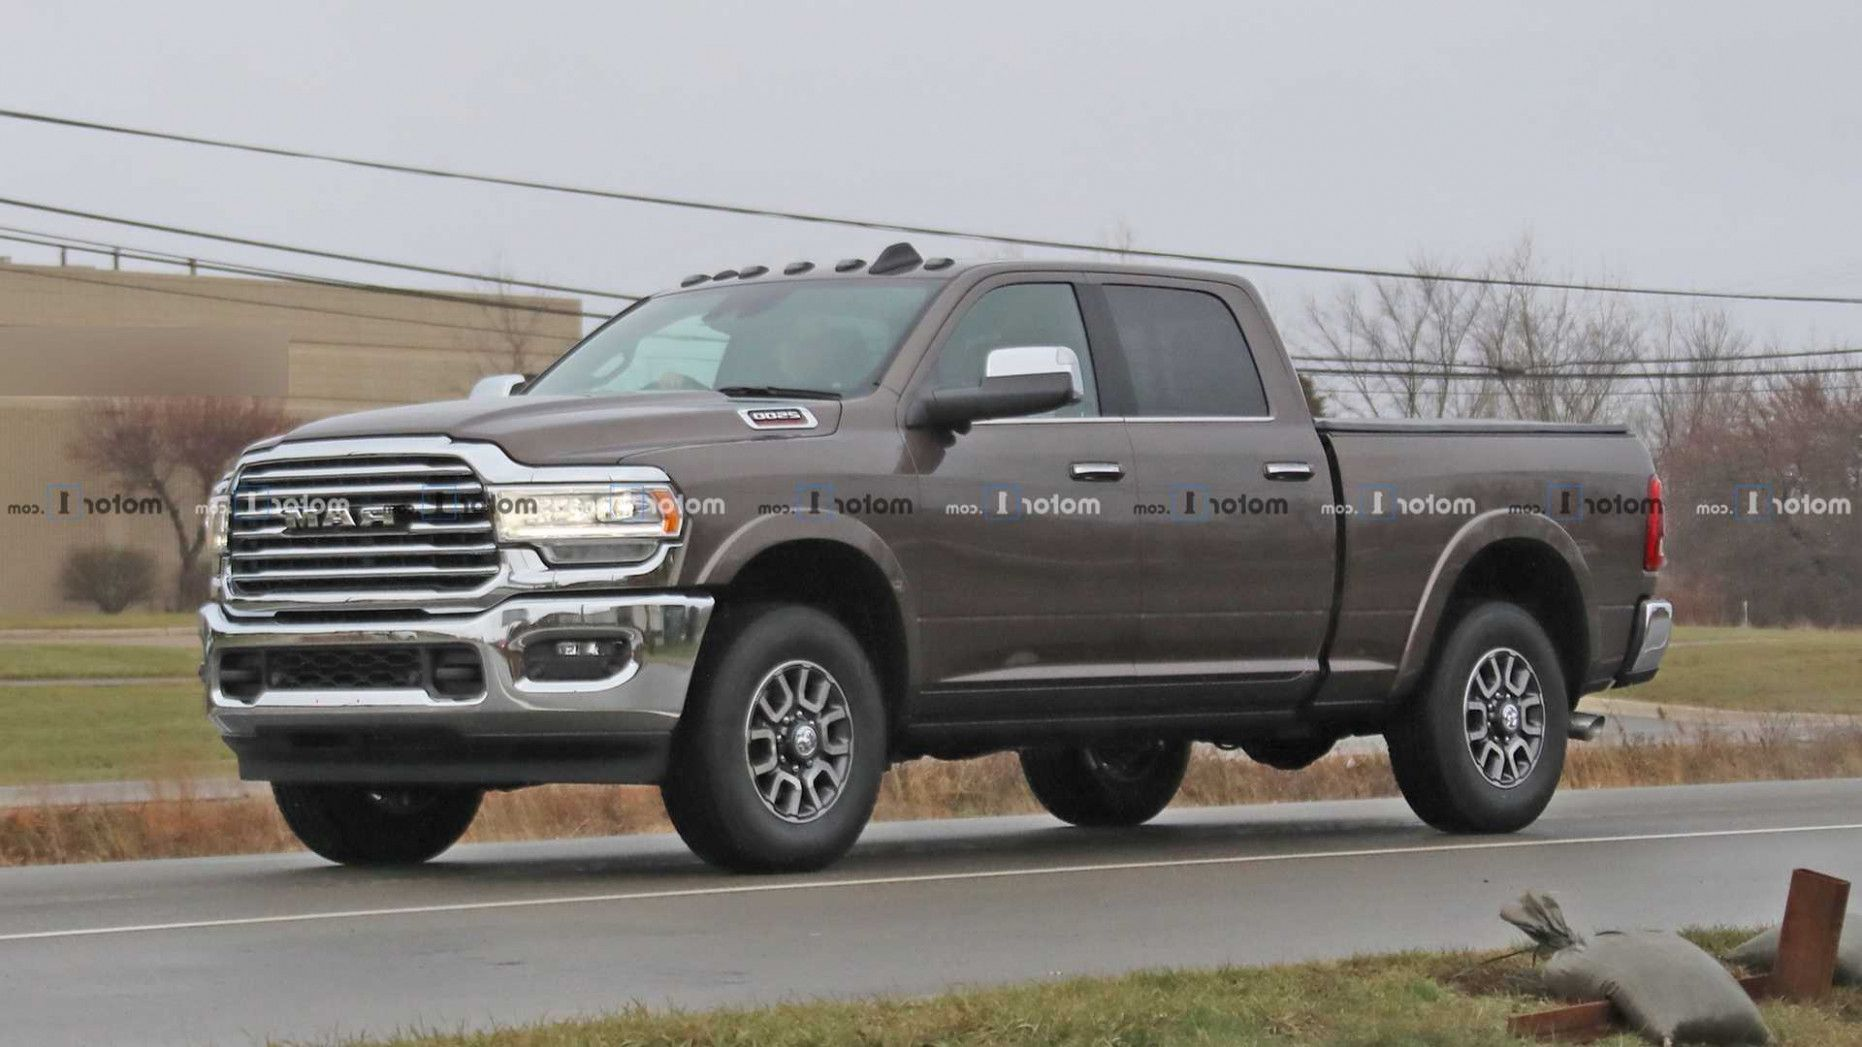 This Is Why 2020 Dodge Laramie 2500 Is So Famous Dodge Mega Cab New Trucks Dodge Ram